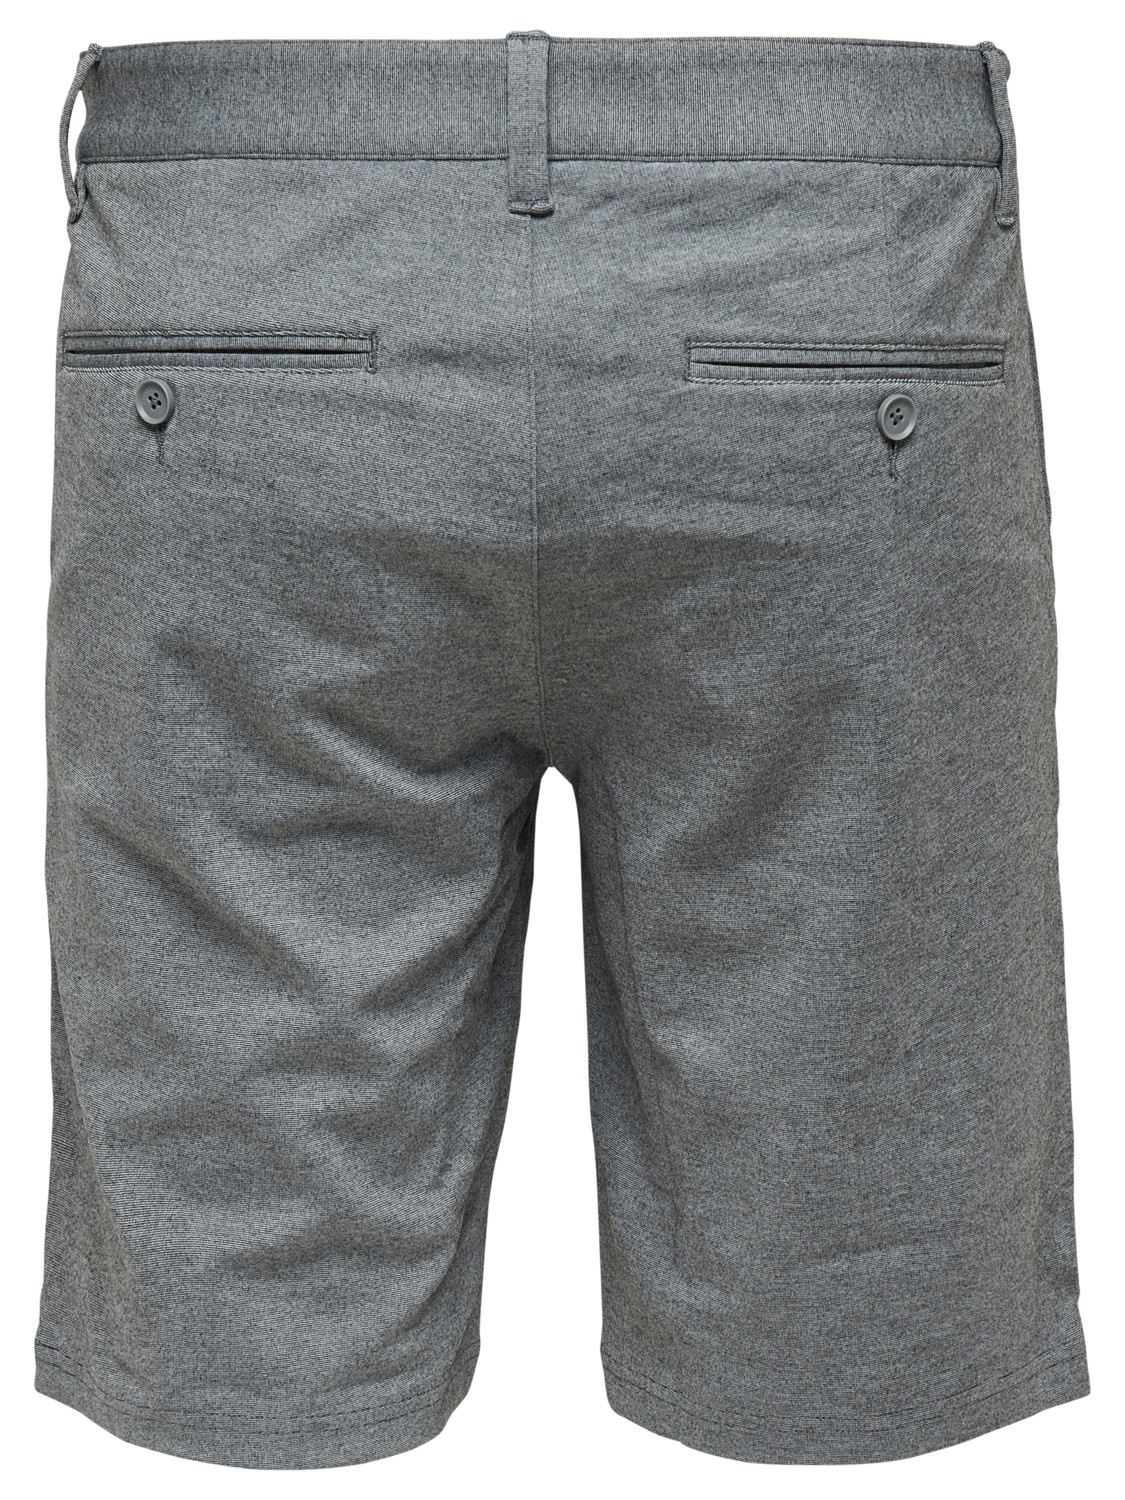 Only & Sons Only & Sons Mark Shorts Grey Melange